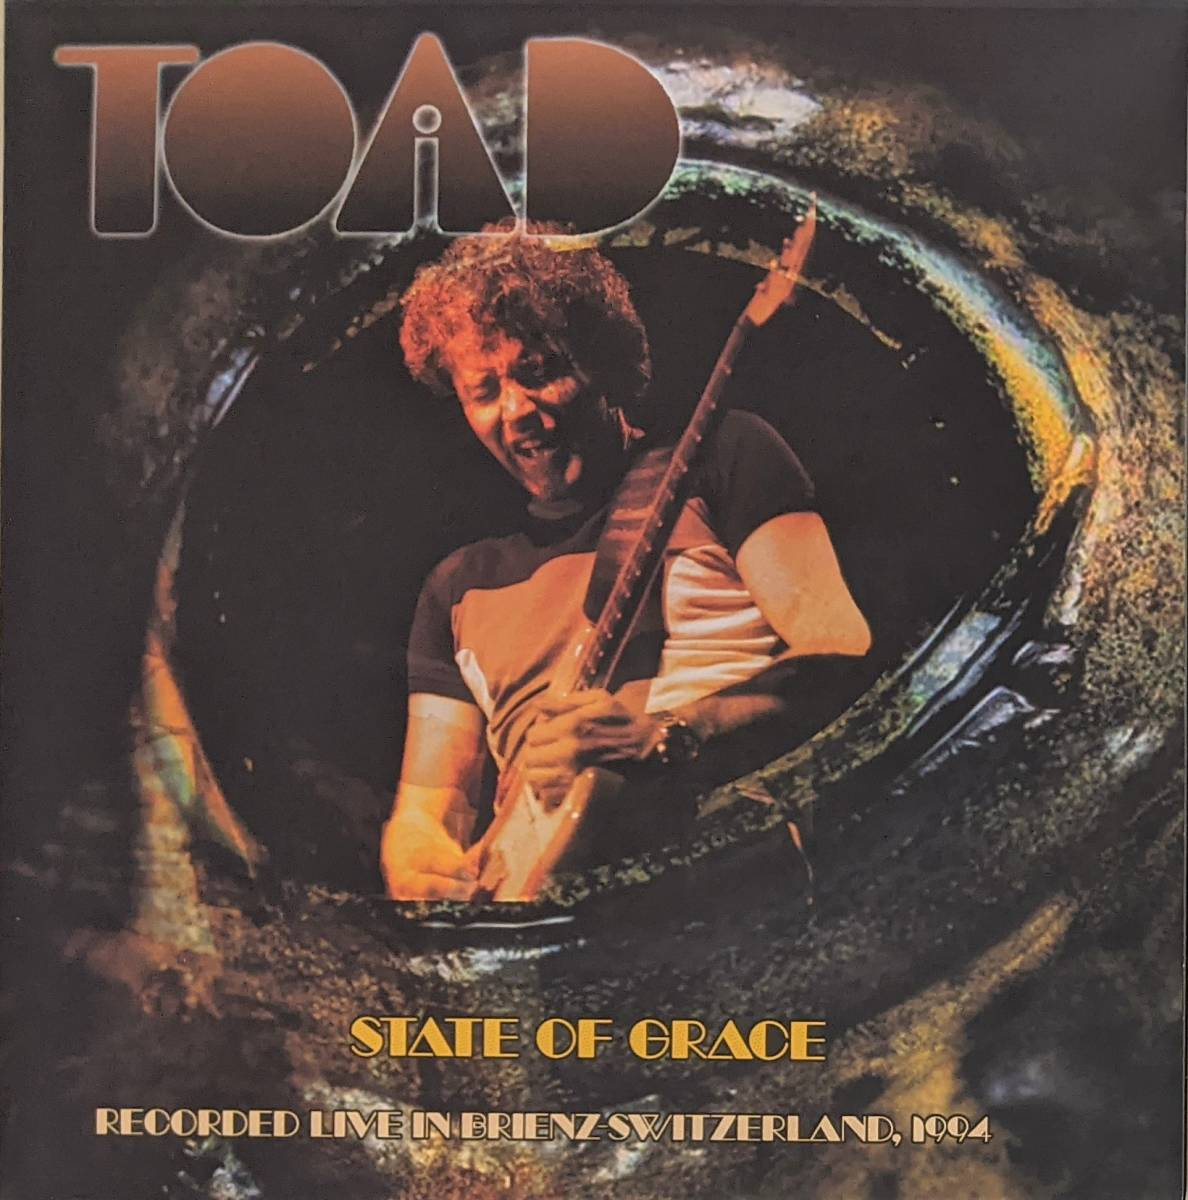 Toad - State Of Grace: Recorded Live In Brienz Switzerland 1994 限定二枚組アナログ・レコード